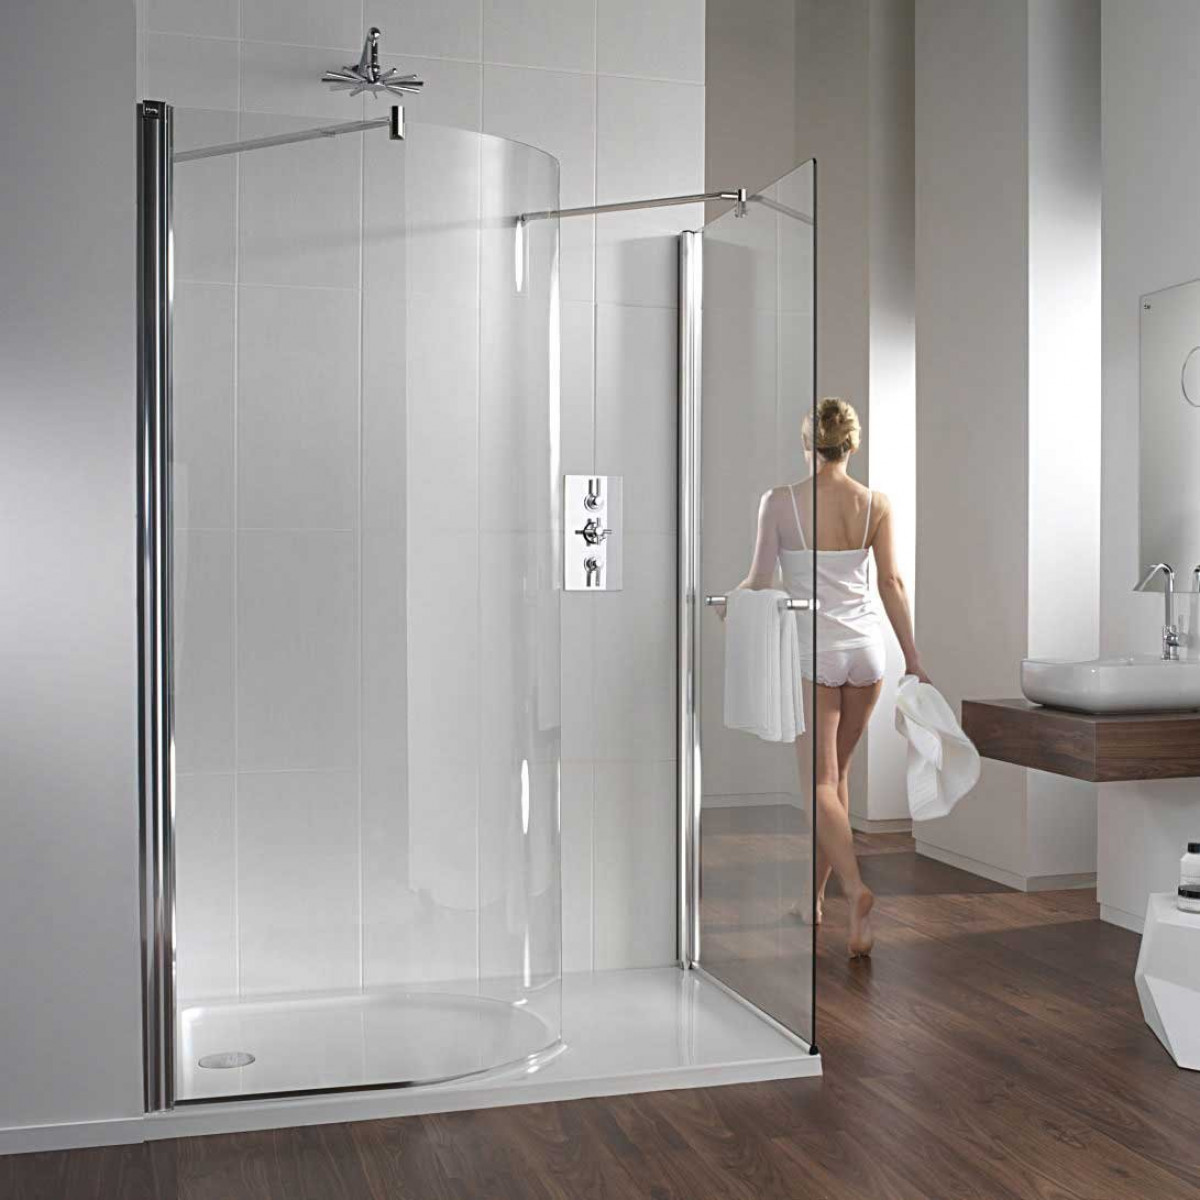 Twyford hydr8 walk in curve shower enclosure for Walk in shower plans and specs